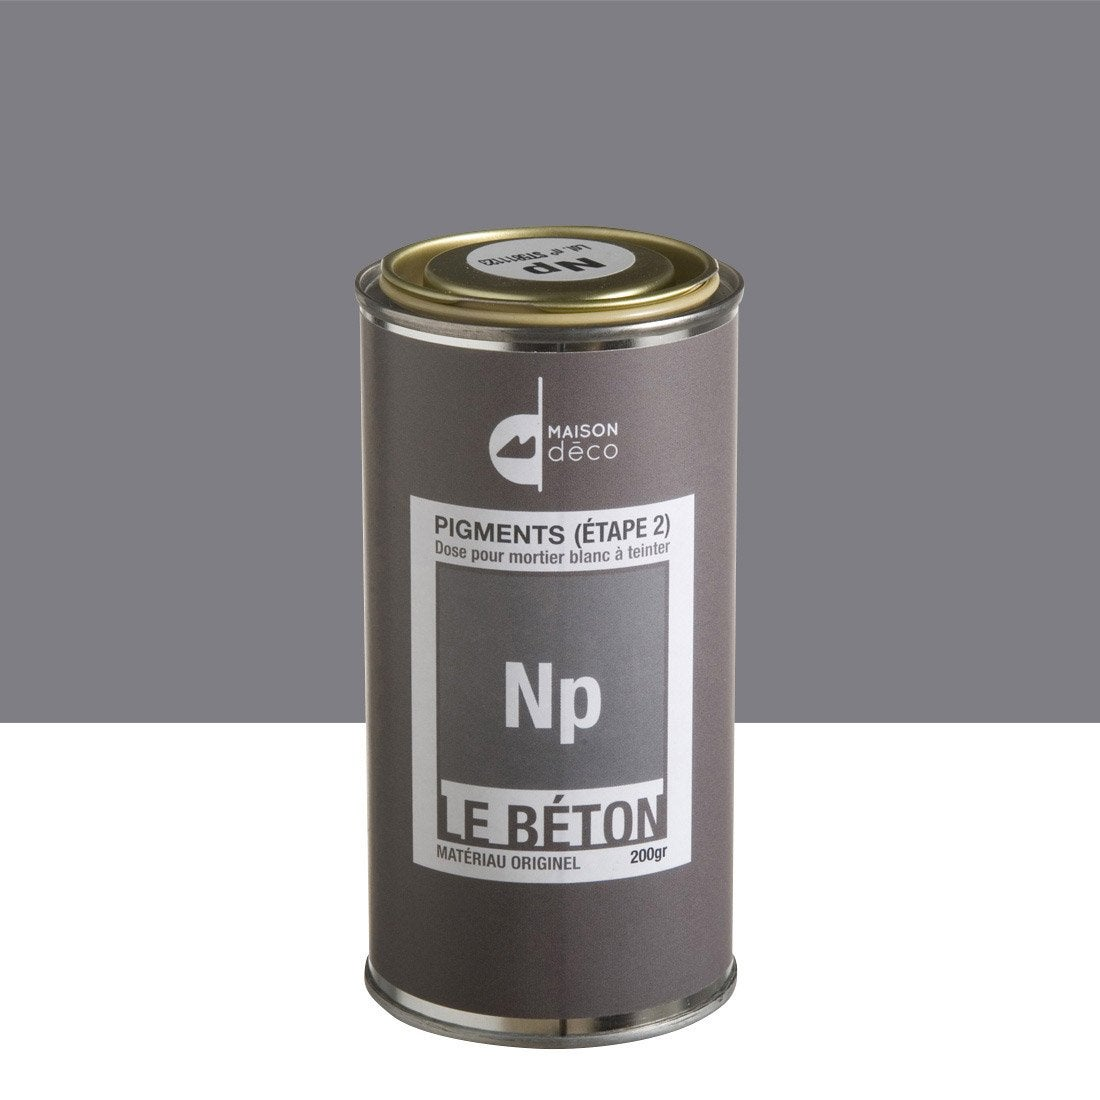 peinture effet pigment le b ton maison deco np 0 2 kg leroy merlin. Black Bedroom Furniture Sets. Home Design Ideas